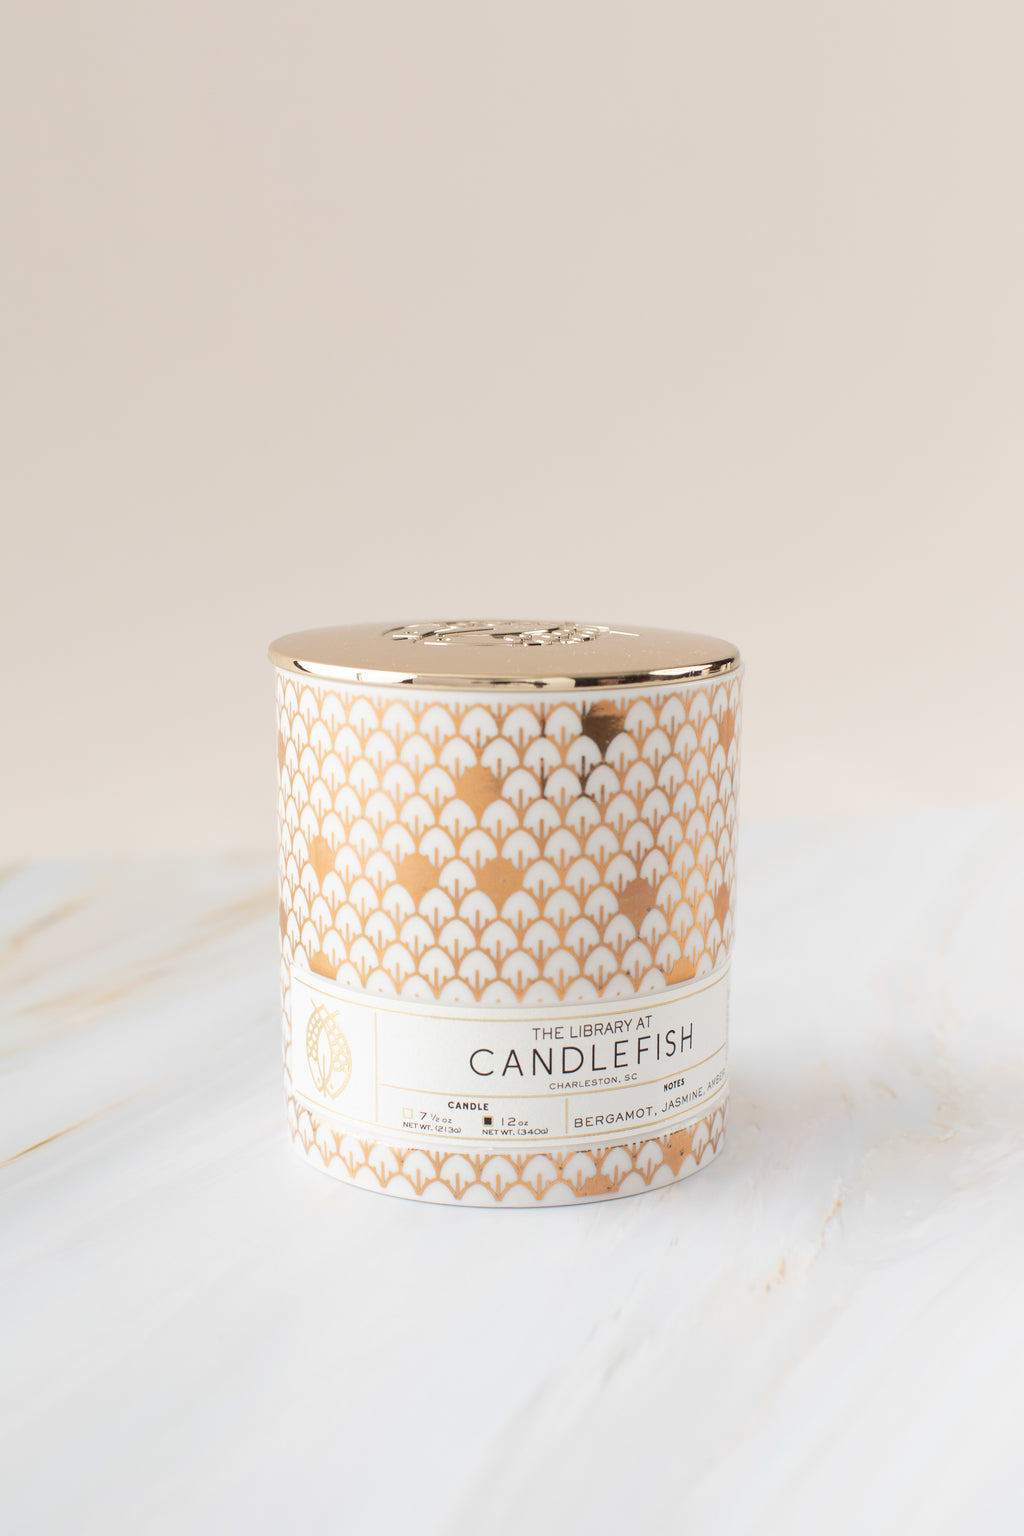 Candlefish No. 25 Gold Scales Ceramic Candle